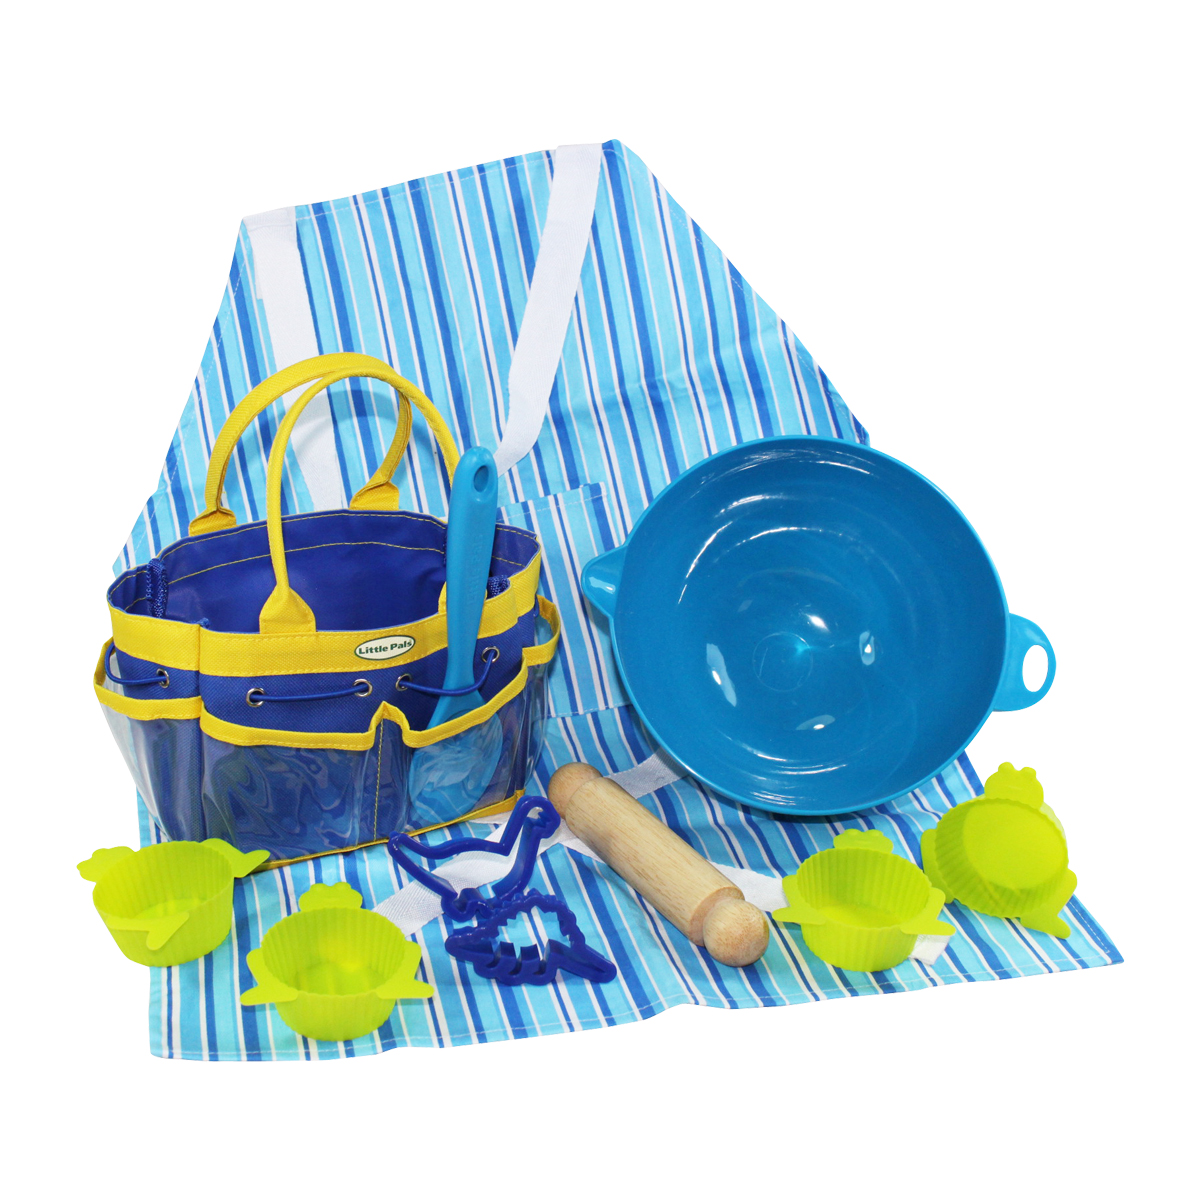 Kids Junior Baking Set Blue